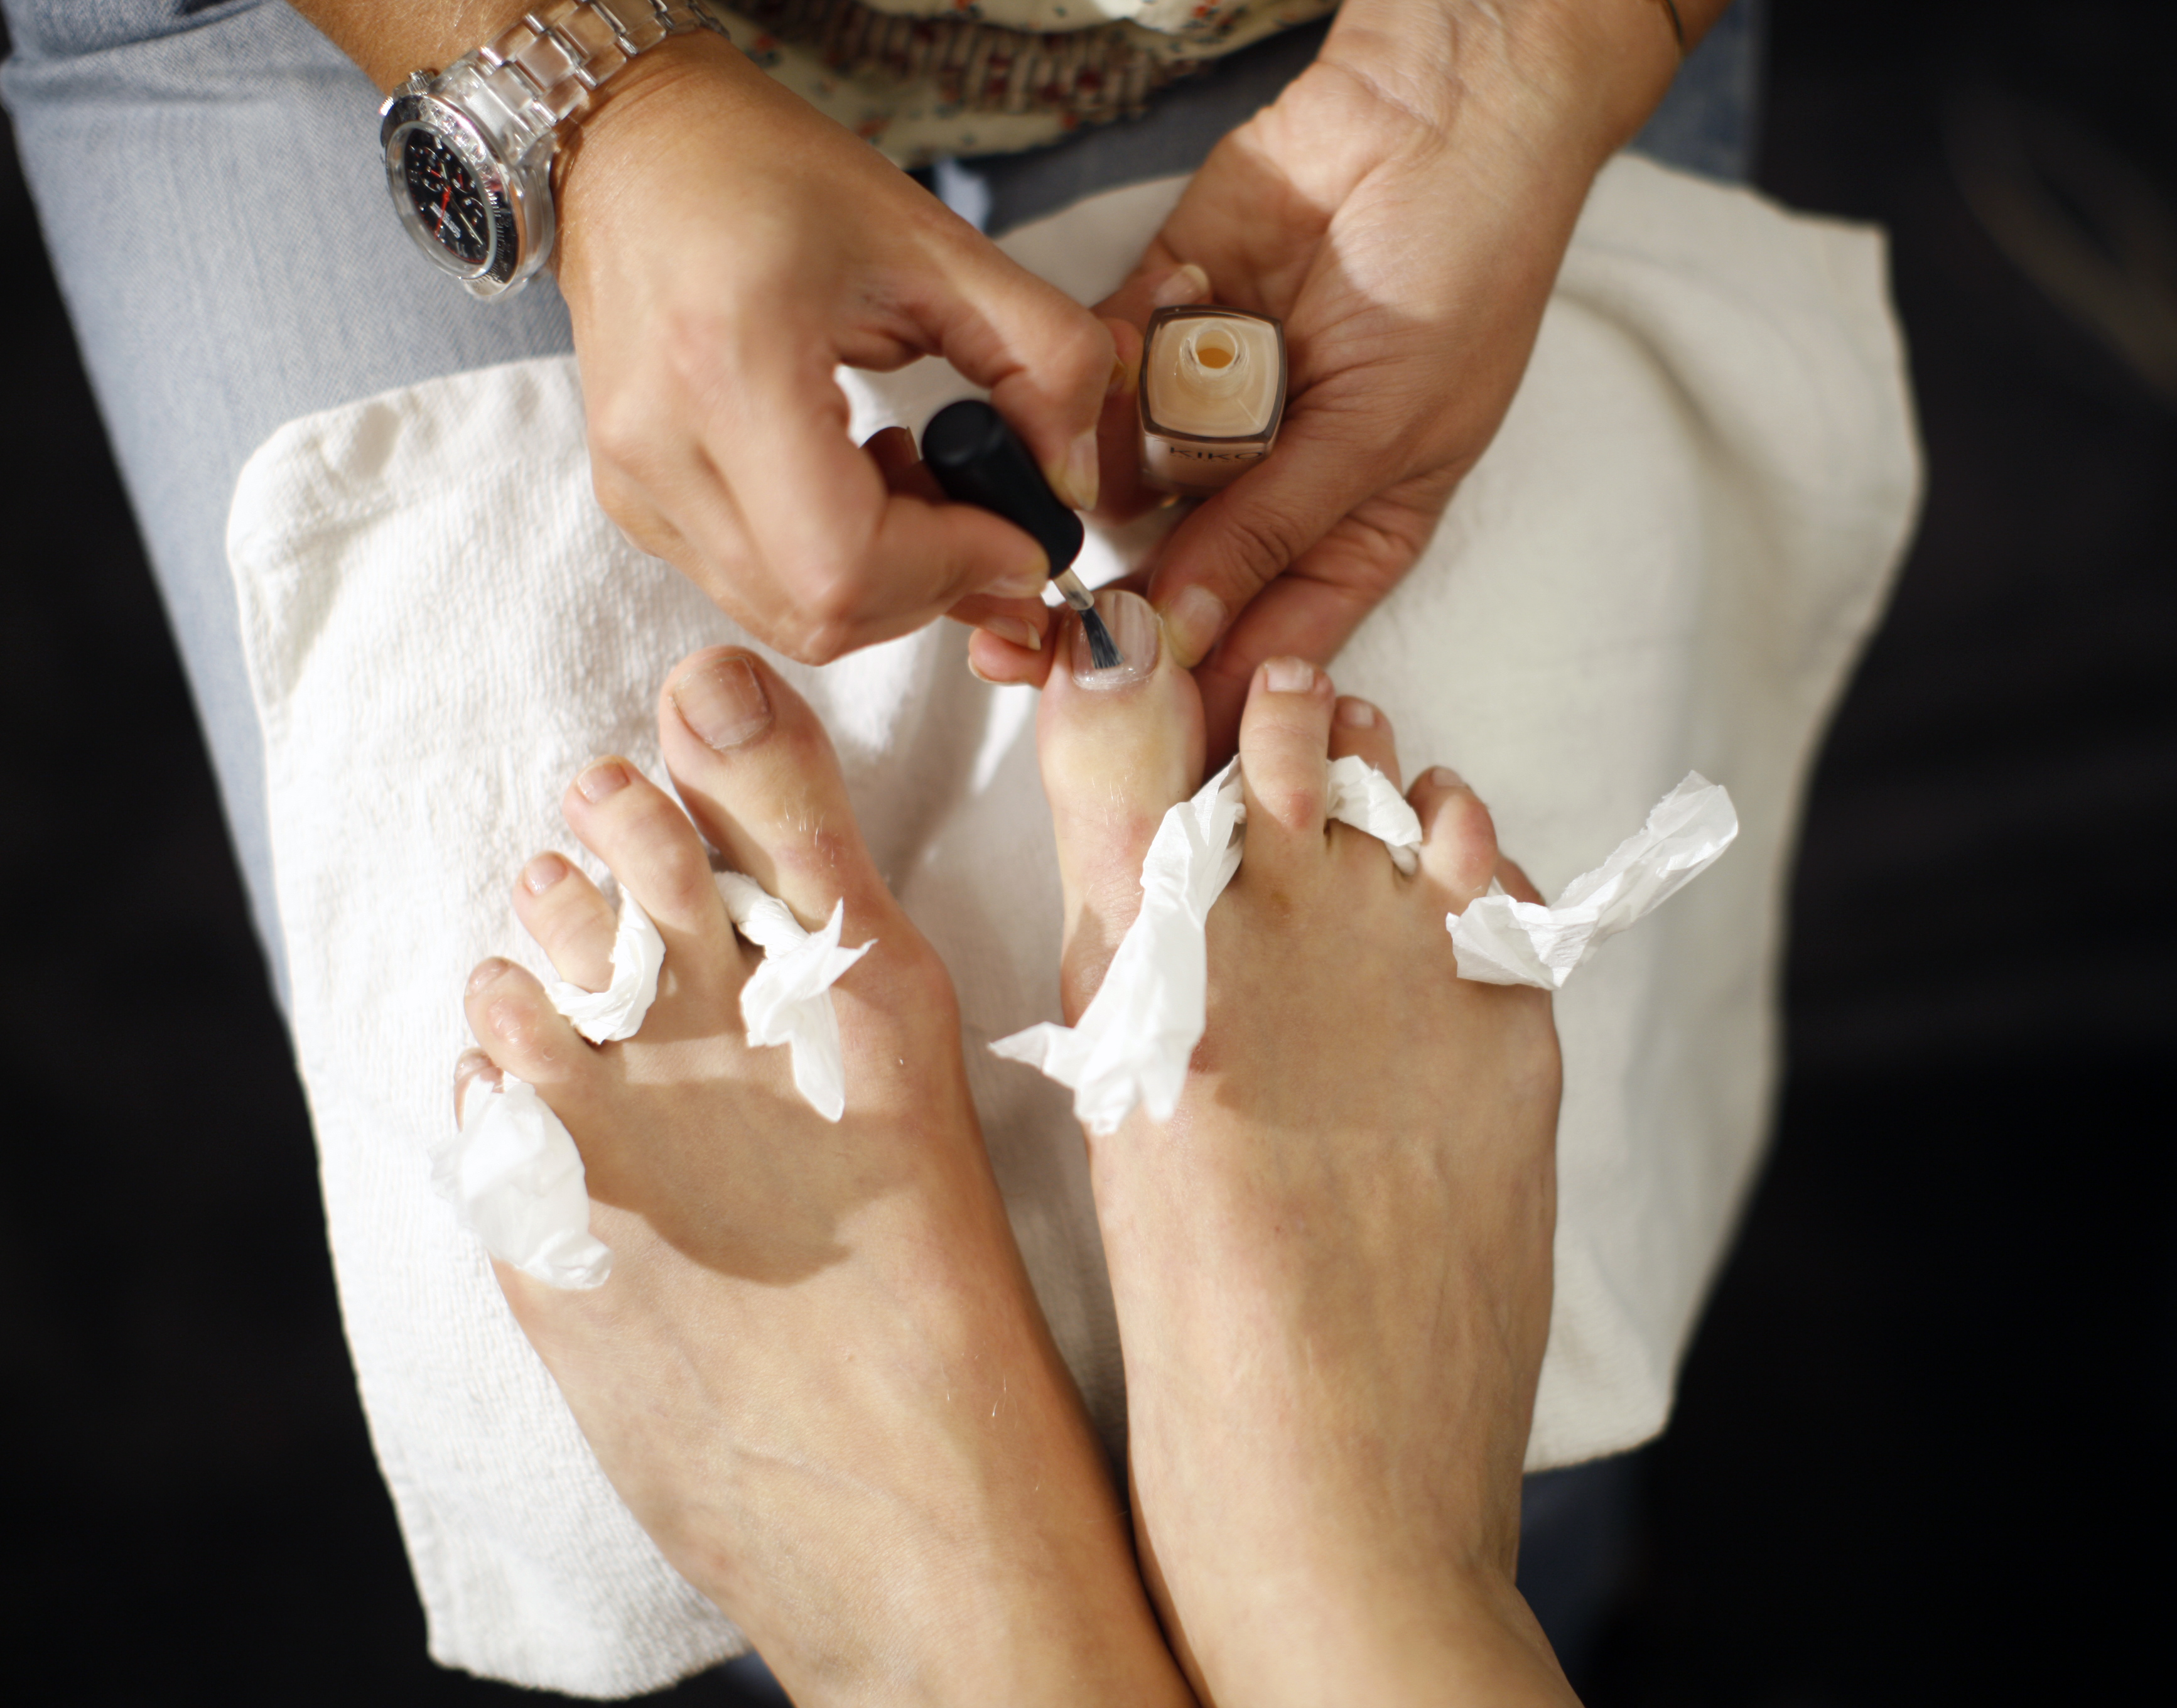 wart on foot and pedicure